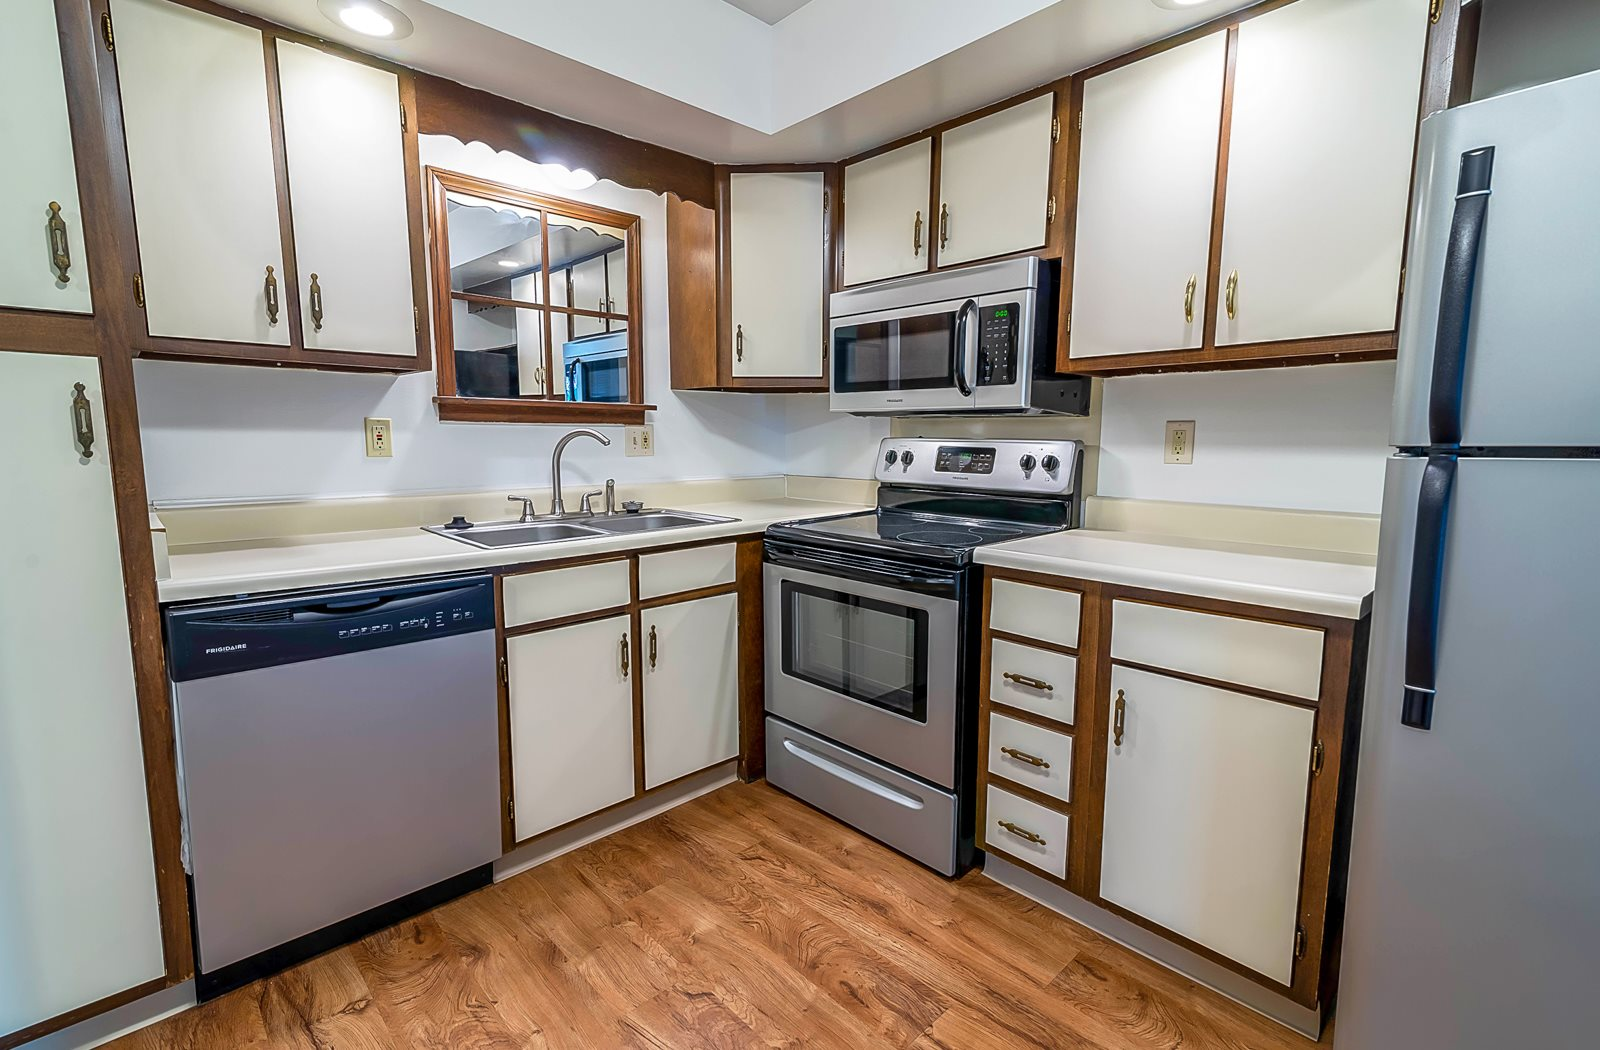 Updated Kitchens at Tiffany Woods Apartments Muskegon MI